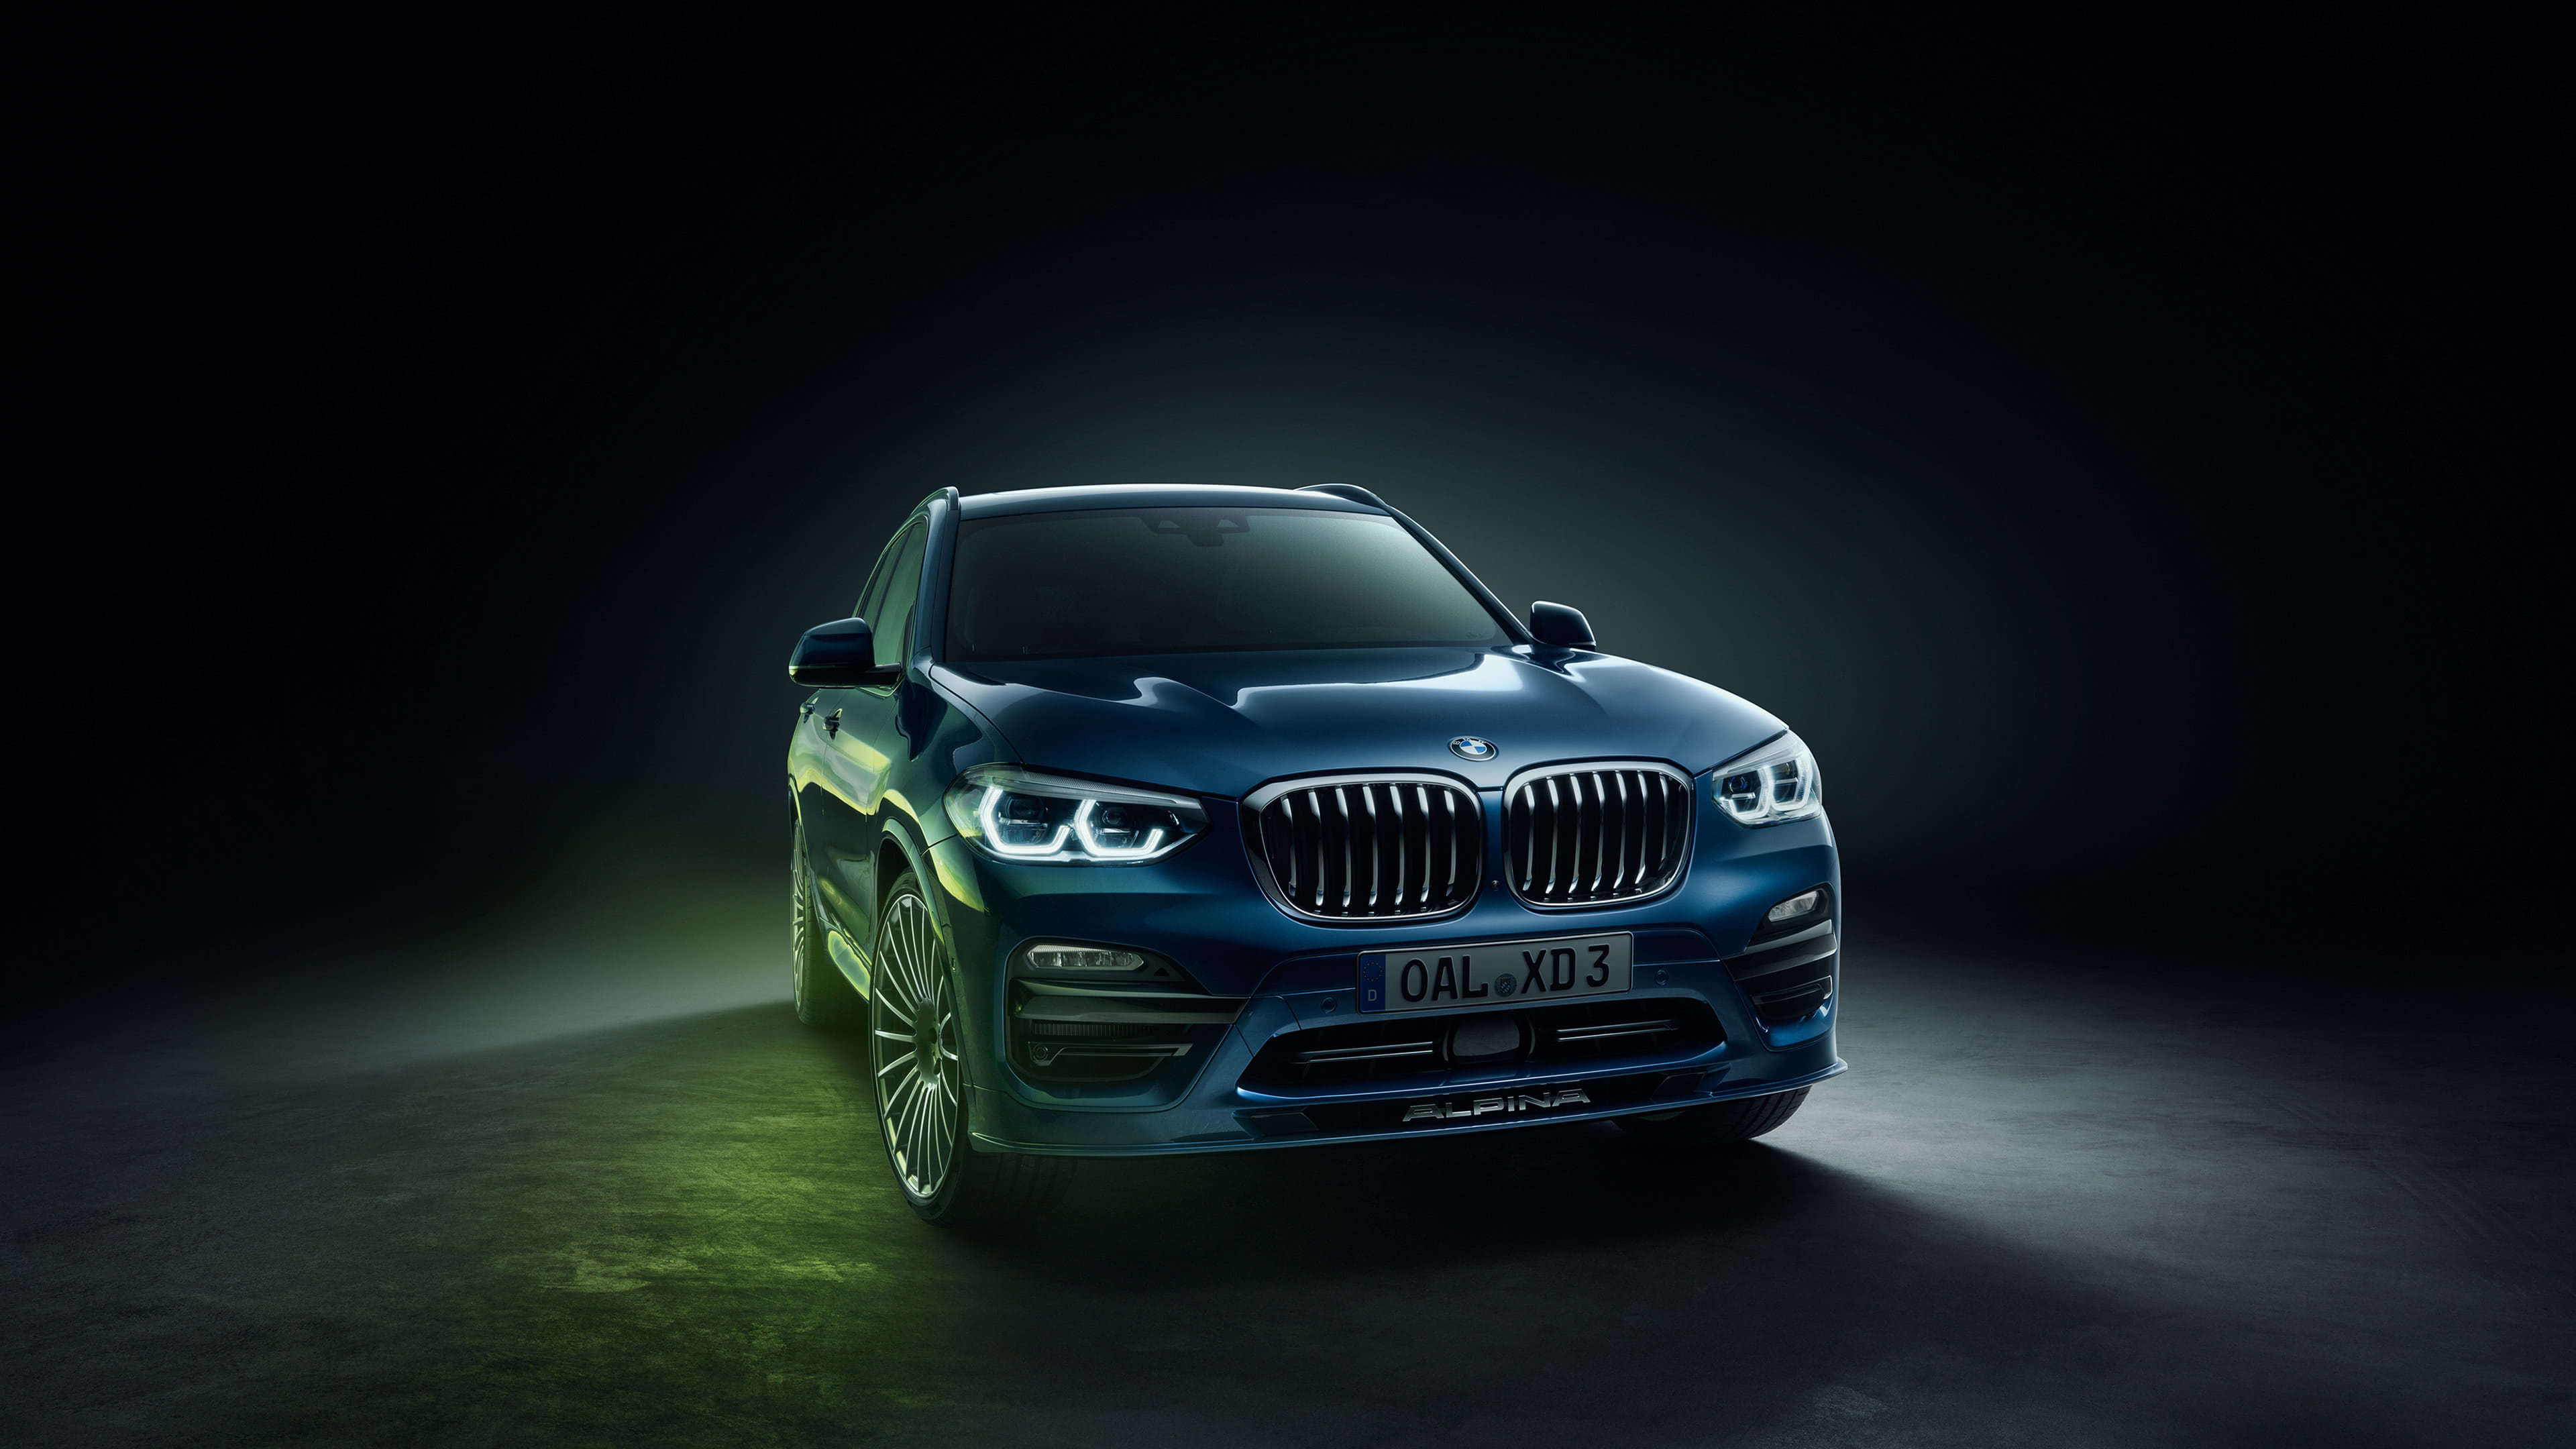 bmw alpina xd3 uhd 4k wallpaper